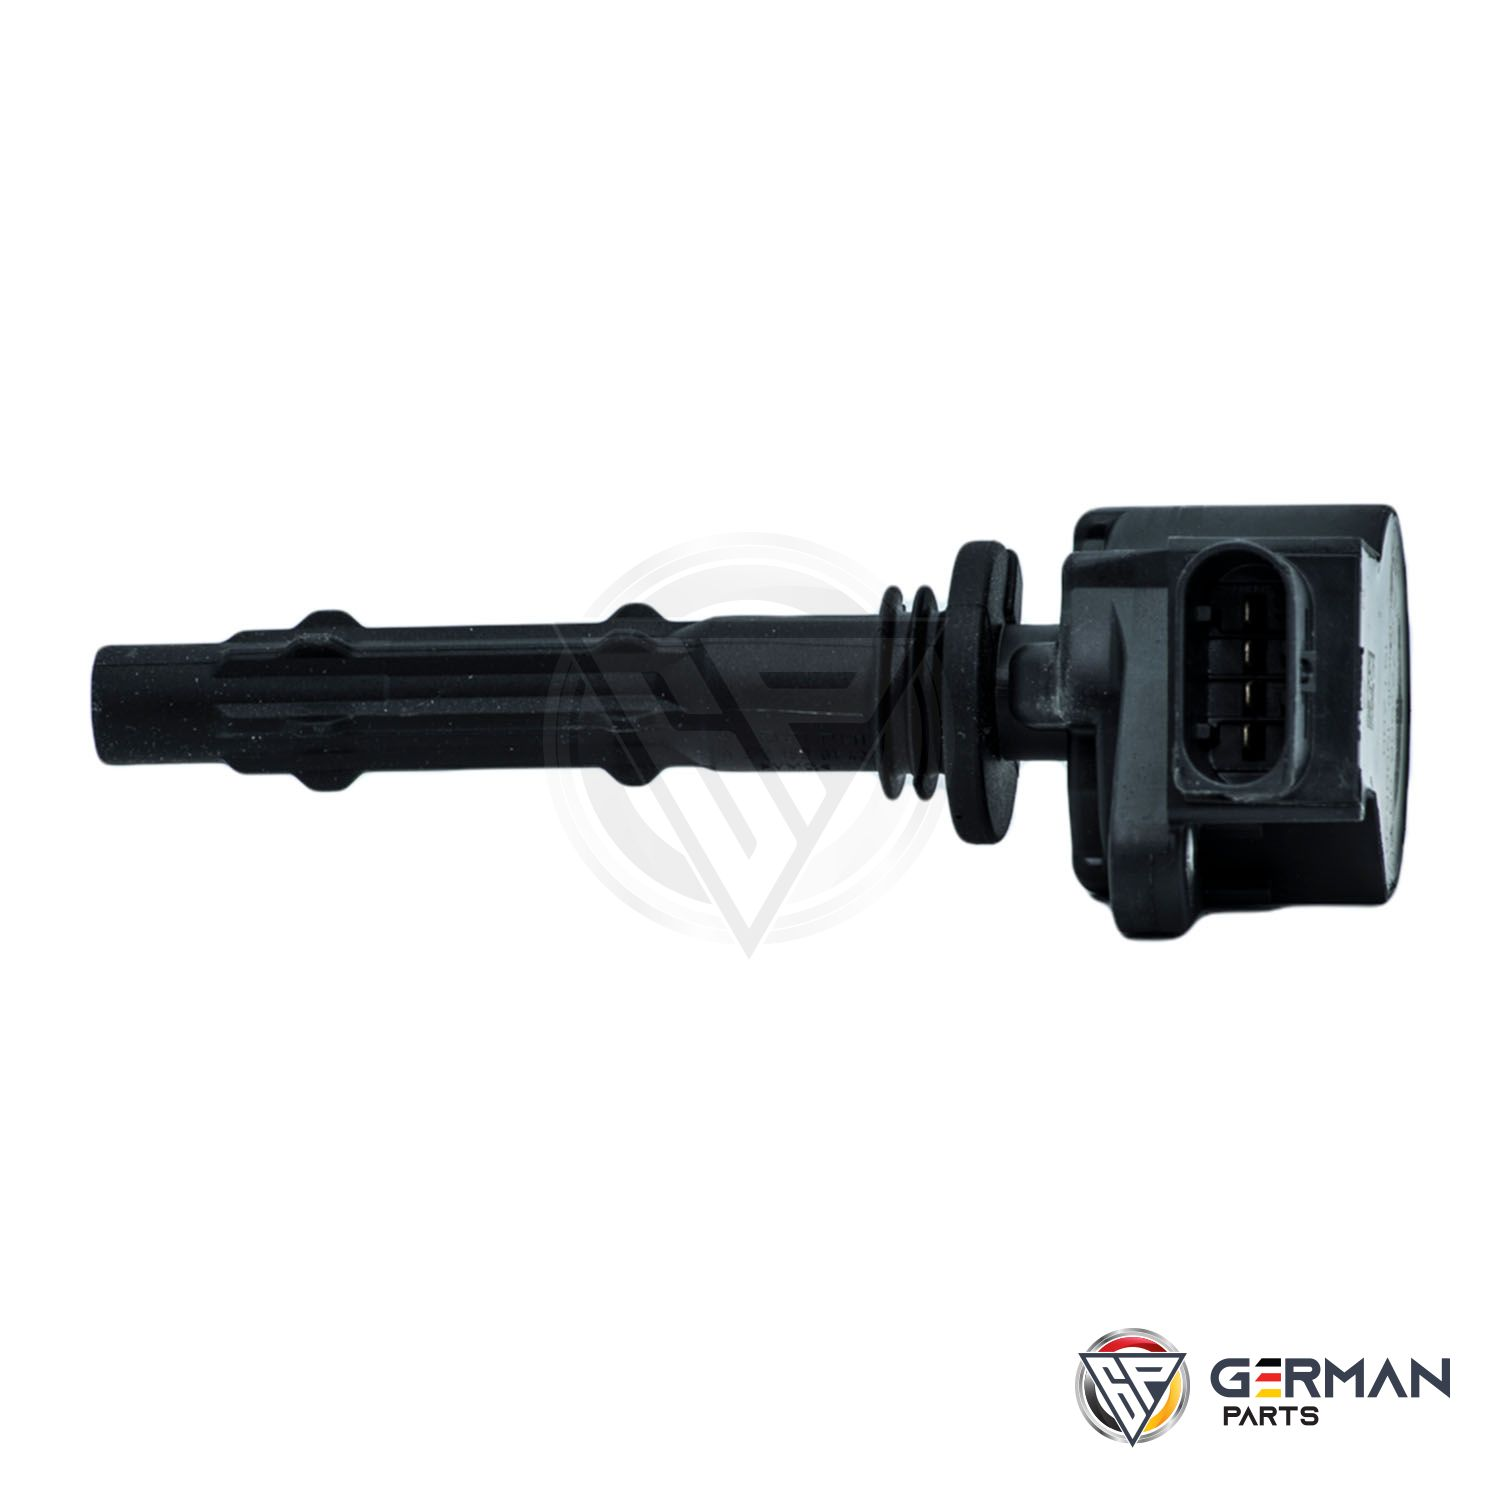 Buy Genuine Mercedes Benz Ignition Coil 2729060060 - German Parts